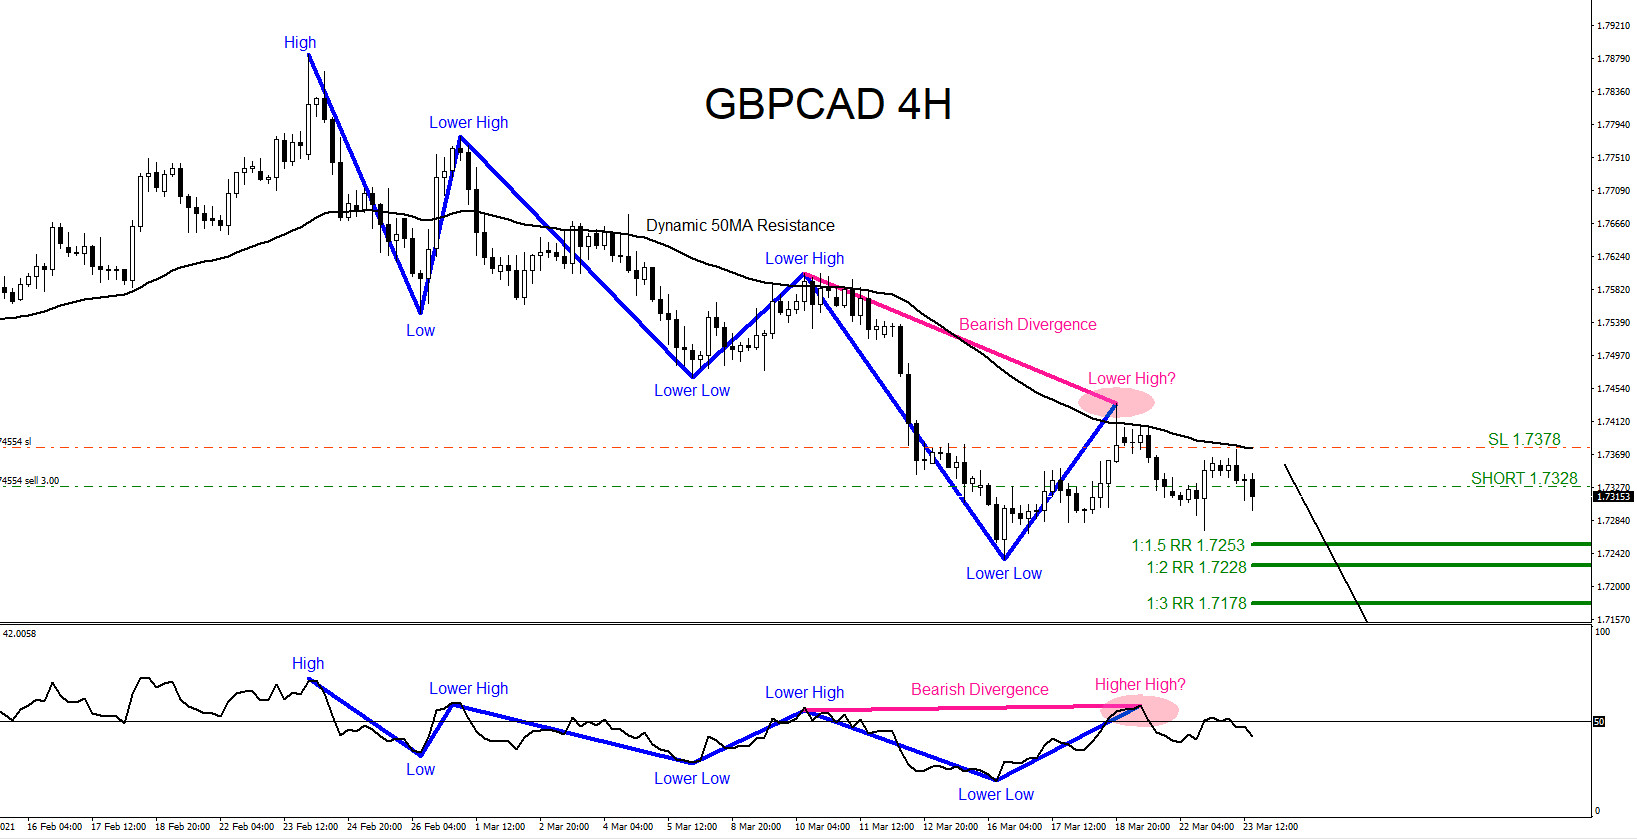 GBPCAD : Catching the Move Lower